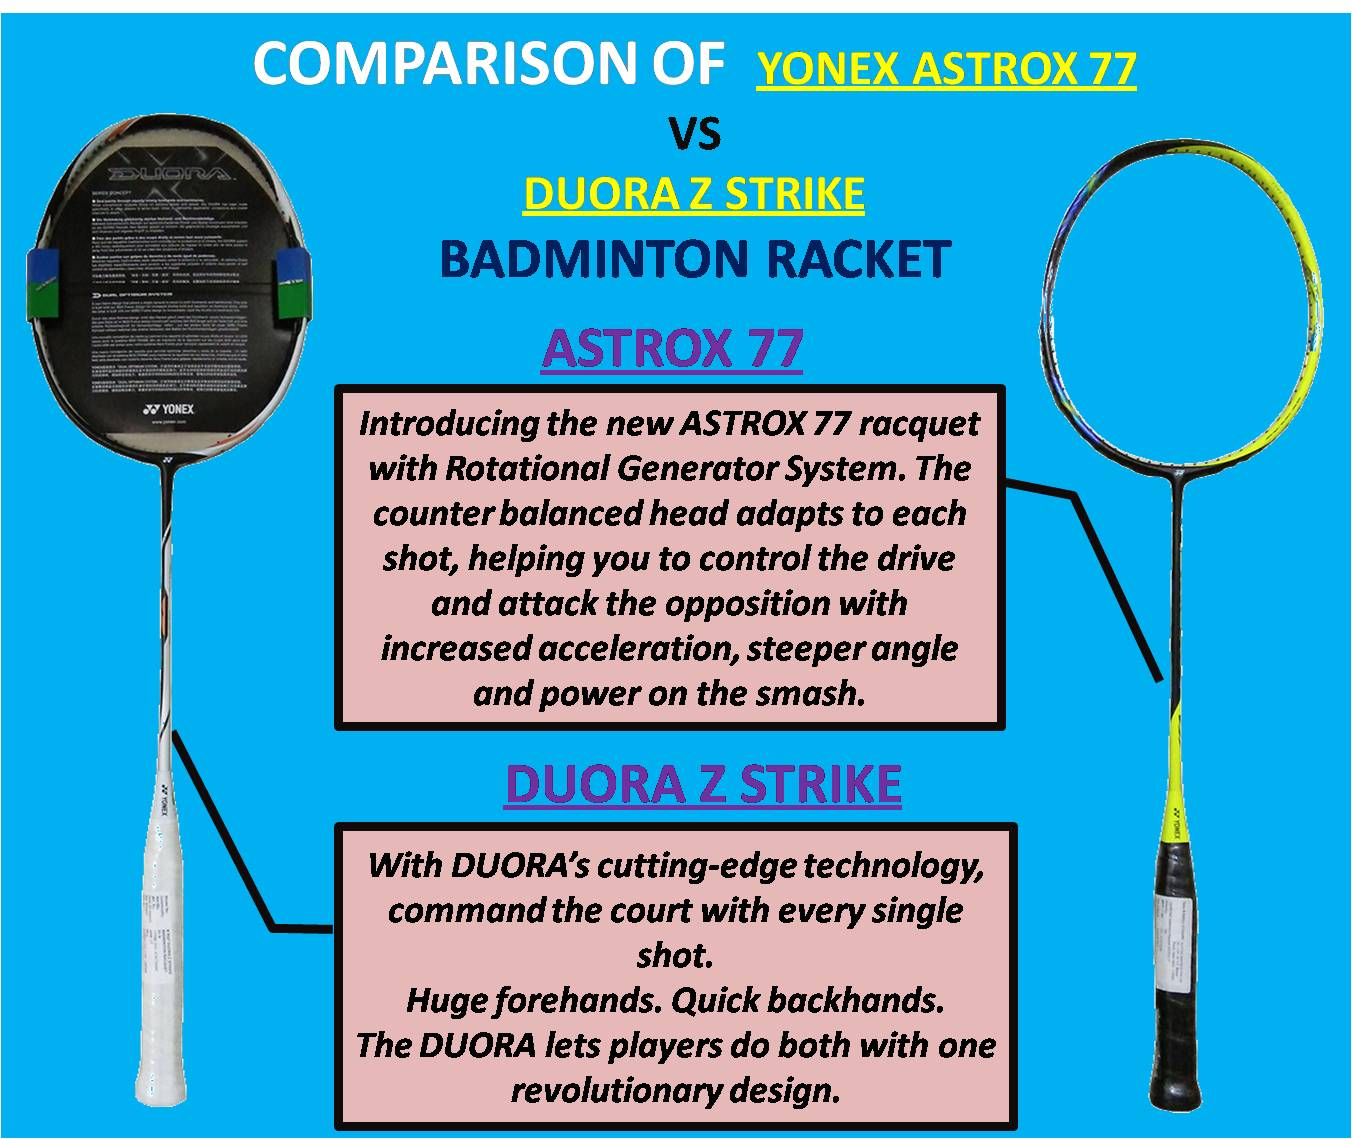 COMPARISON OF YONEX ASTROX 77 VS DUORA Z STRIKE_1